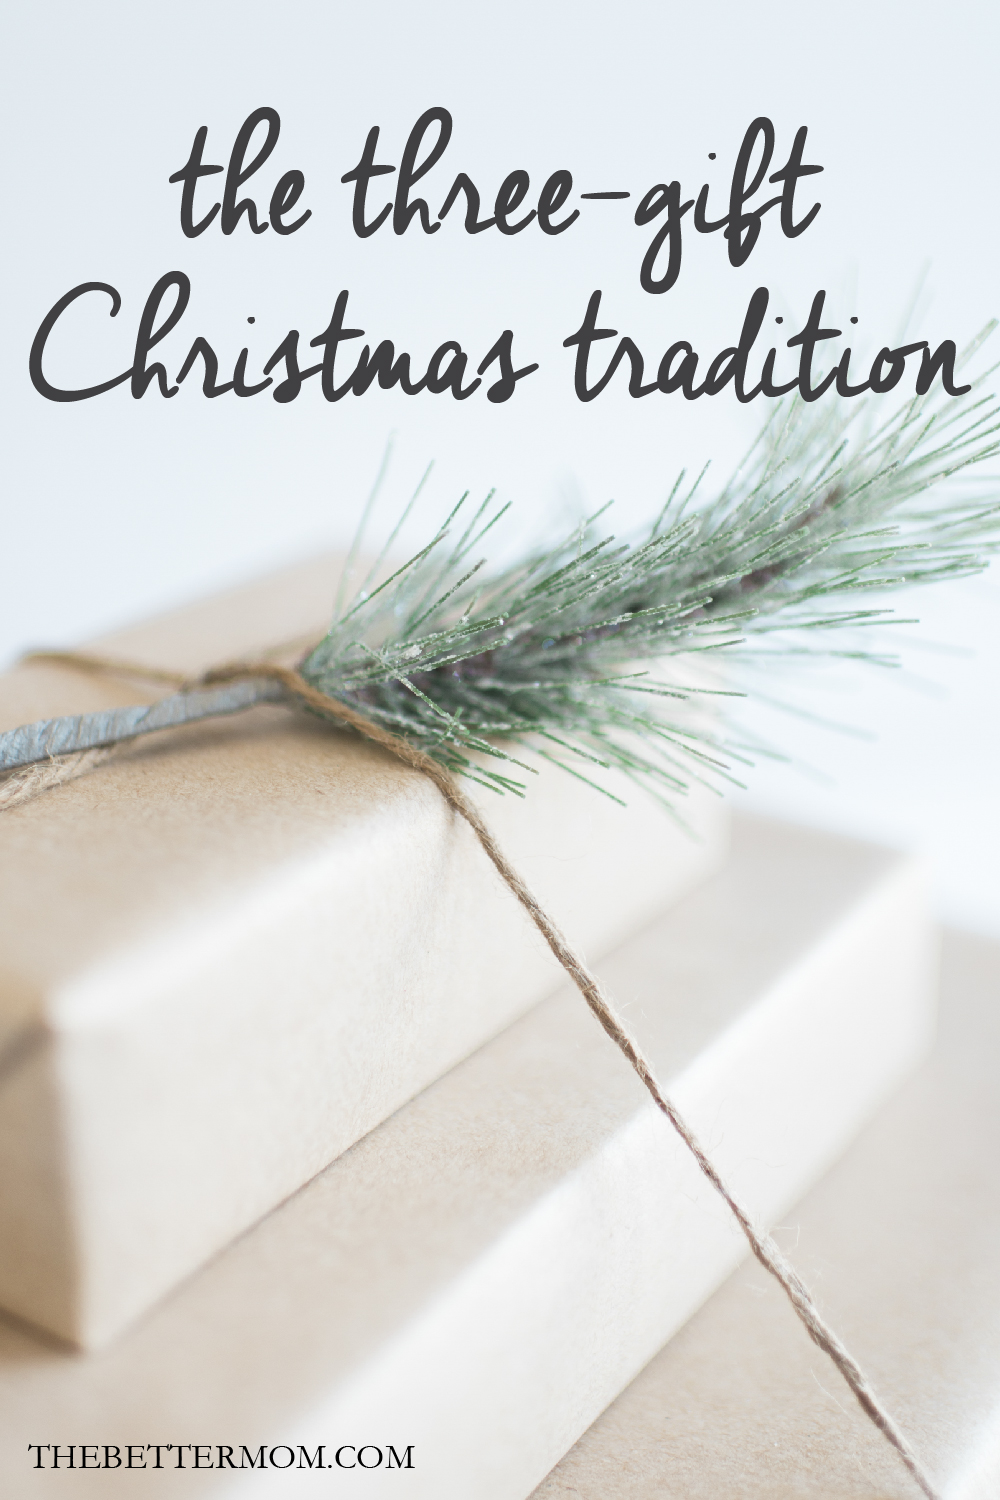 Are you overwhelmed by trying to find the perfect gifts for your children this Christmas? What if the process could be simple? Meaningful? And directly point your children of the story of Christ's birth? Join us to learn about an amazing tradition of gift giving that does just that!